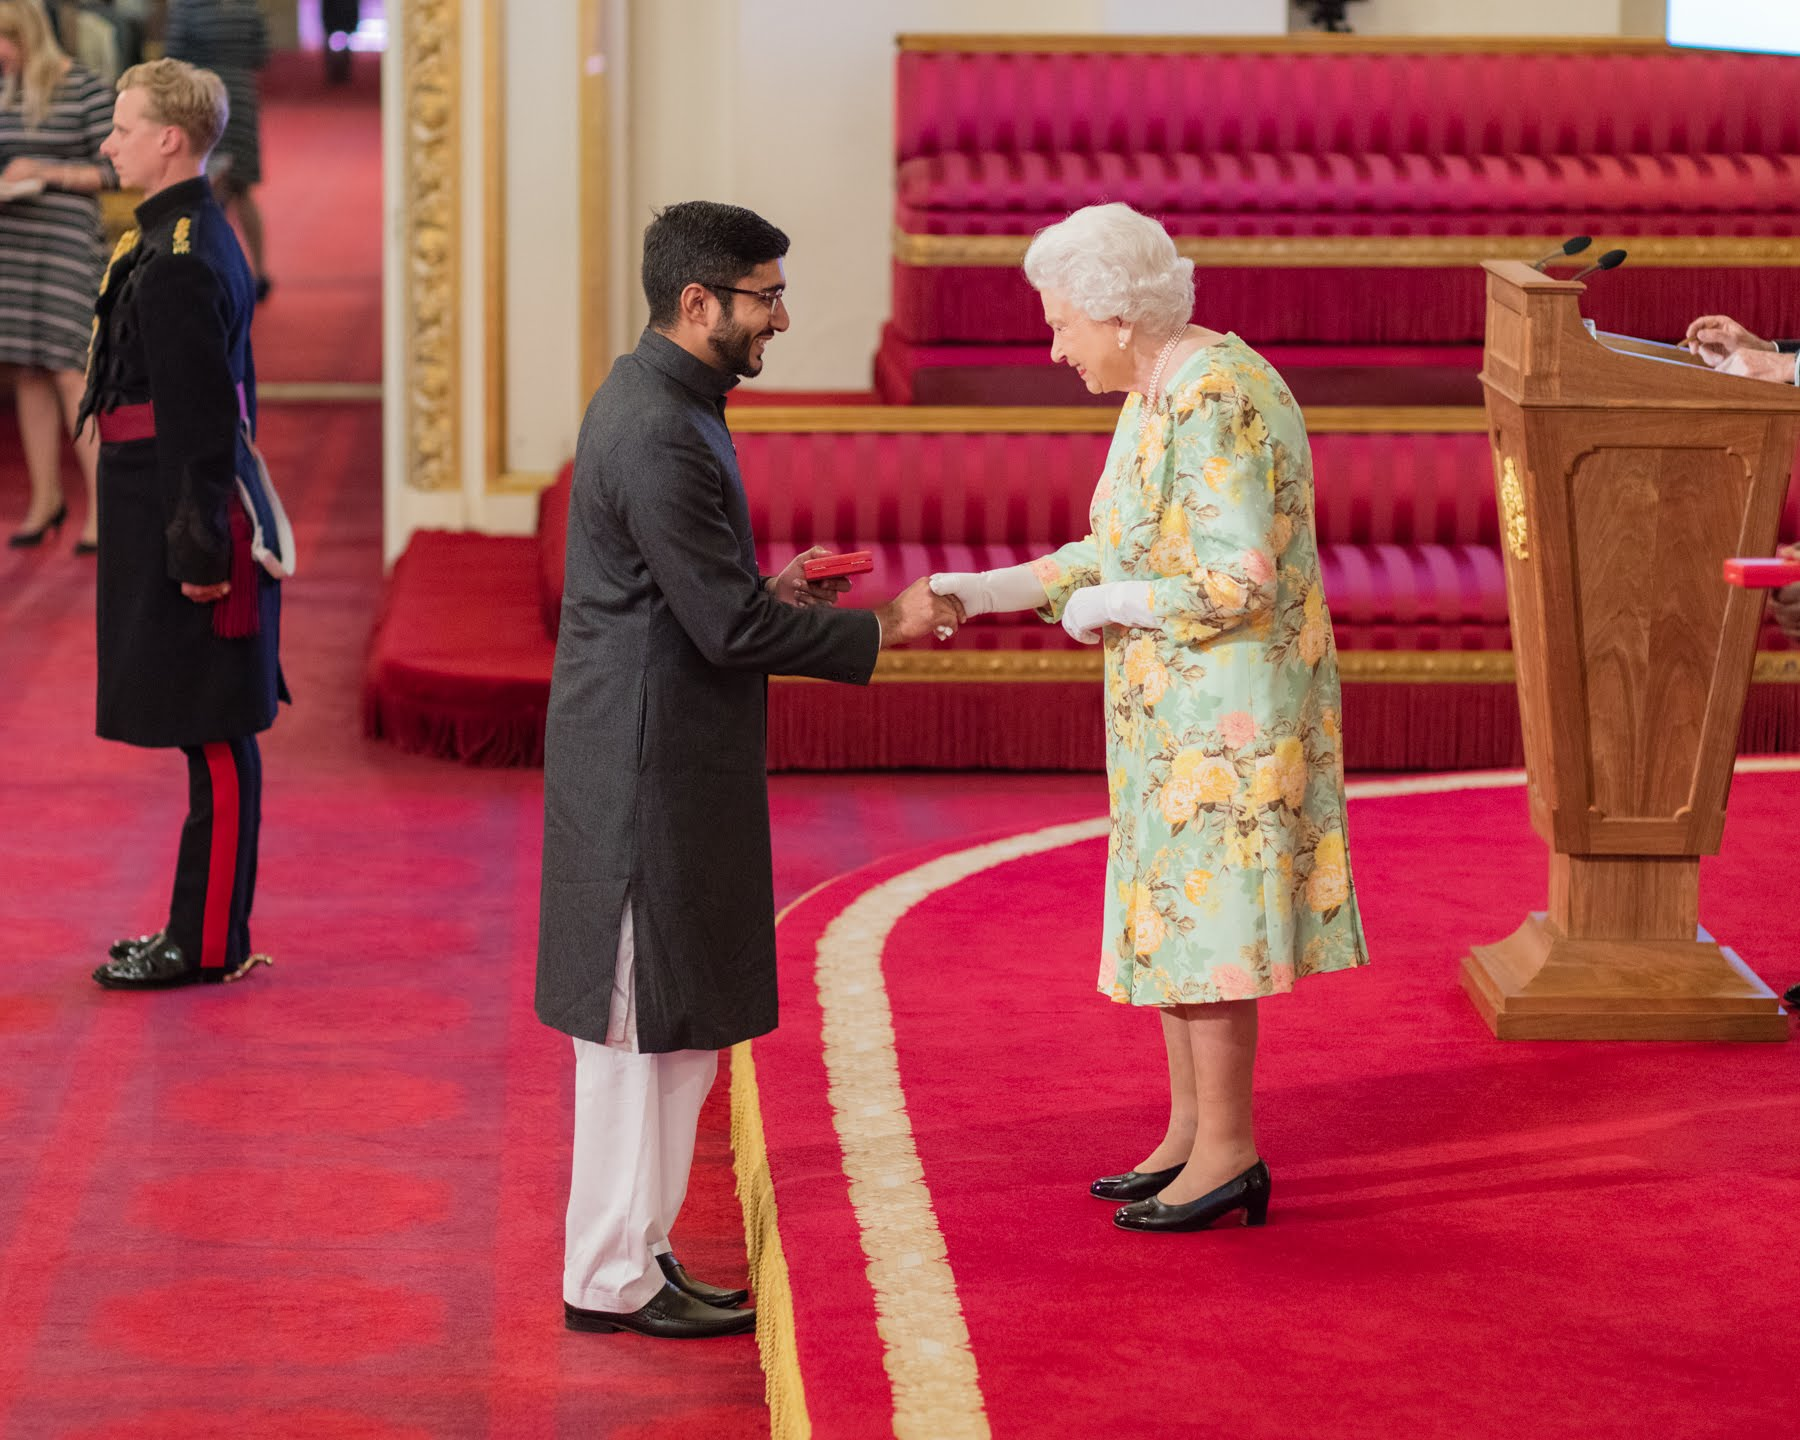 Haroon Yasin 2018 Queen's Young Leader from Pakistan